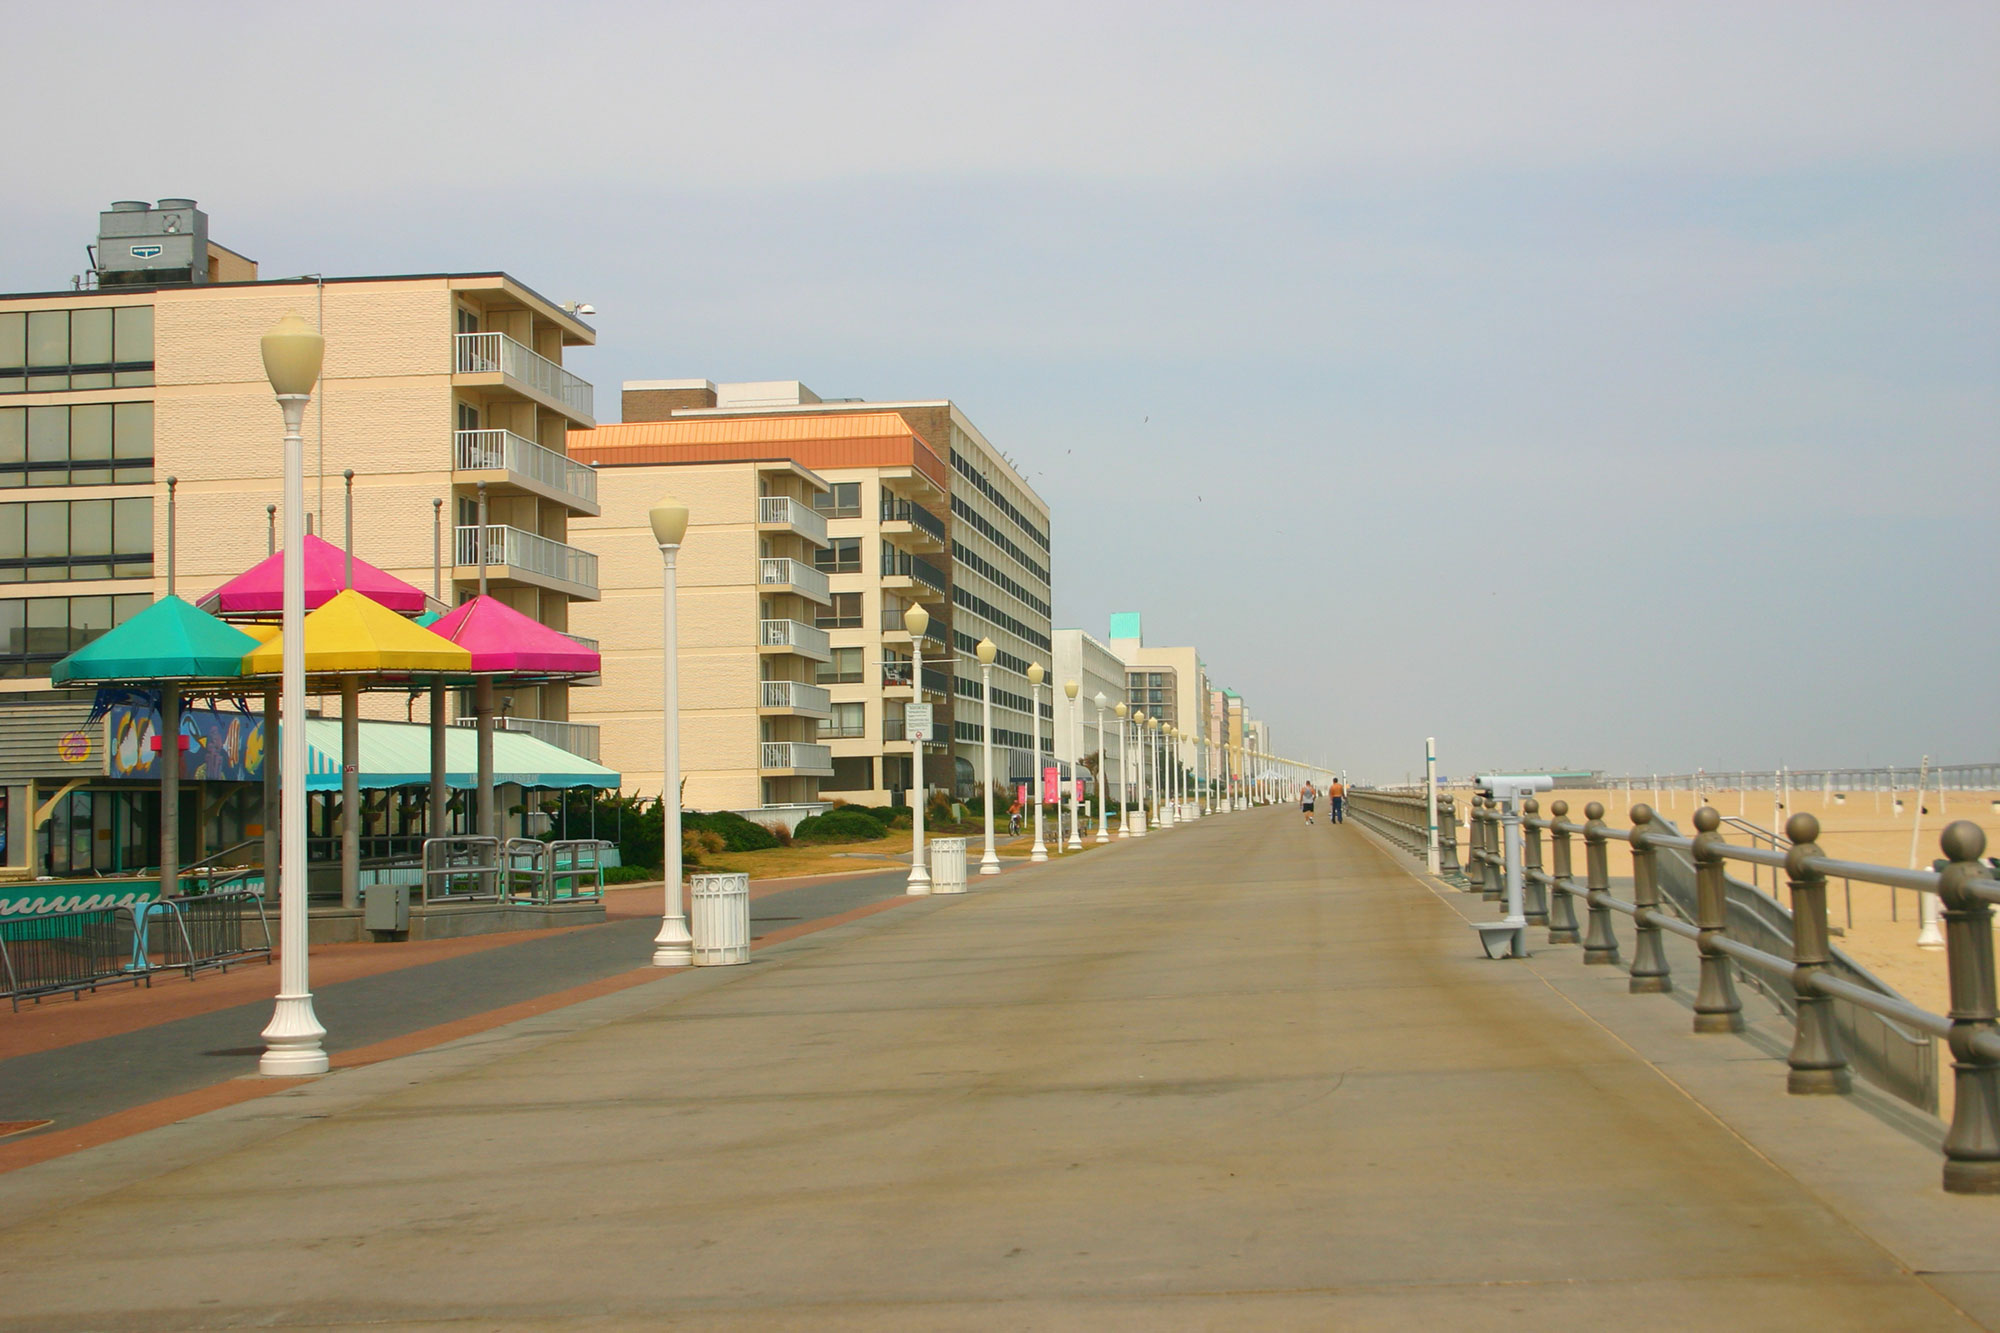 One of the Safest Cities in the US - Virginia Beach